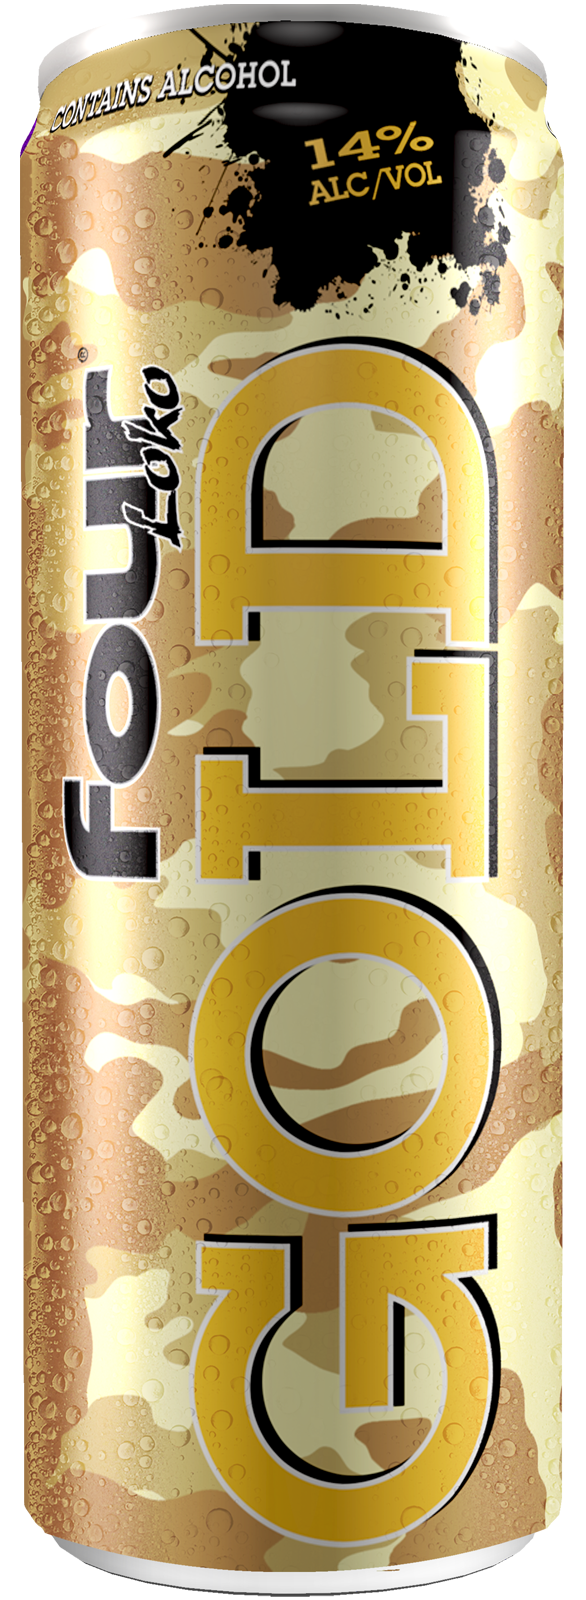 Discover All of Four Loko's Flavors | Four Loko